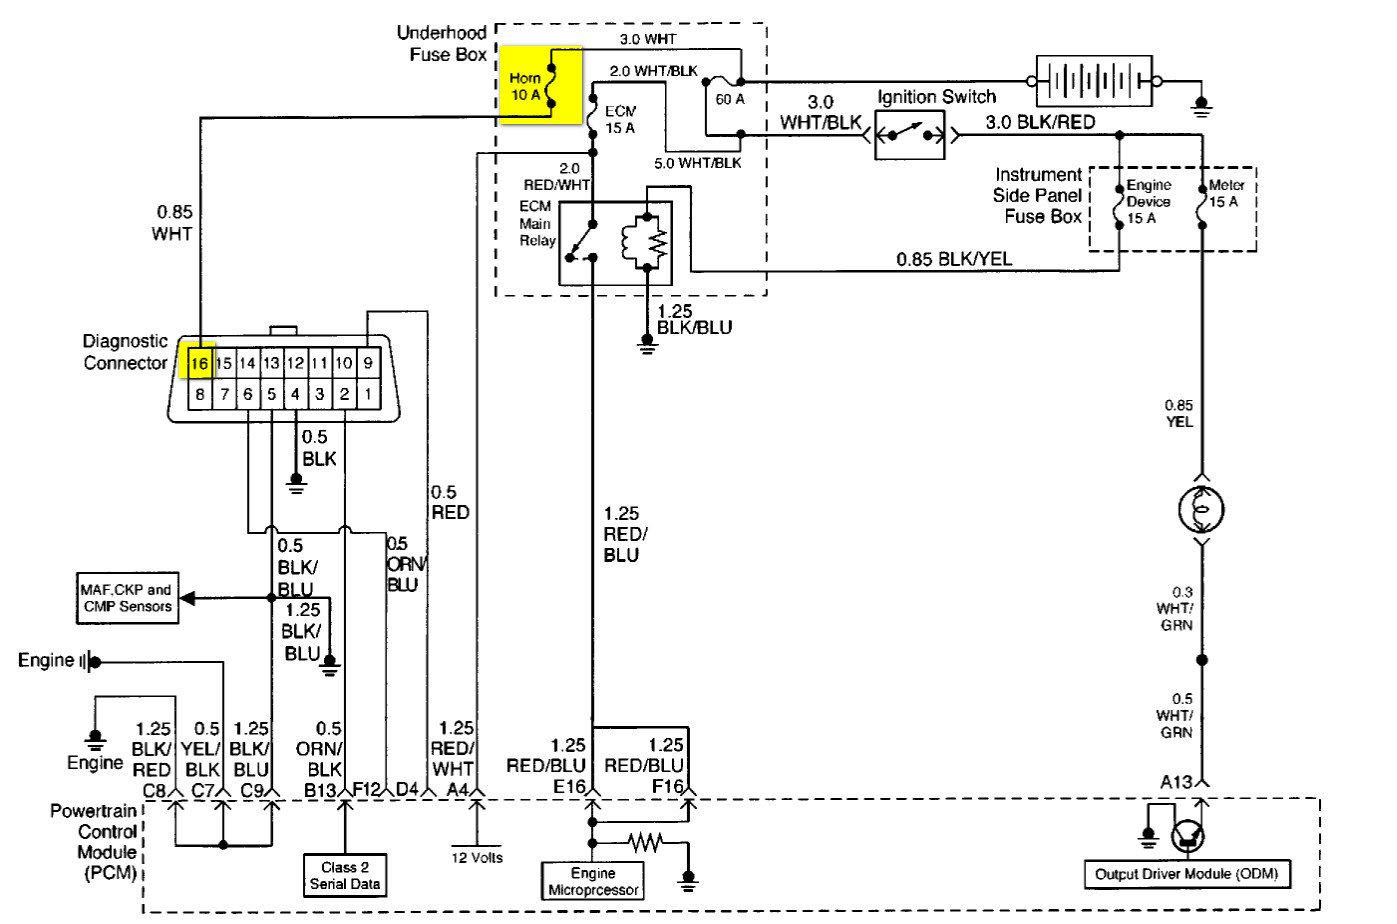 may i have the pin diagram for thr obd2 connector to test 03 dodge stratus  fuse box Dodge Stratus RT MPG